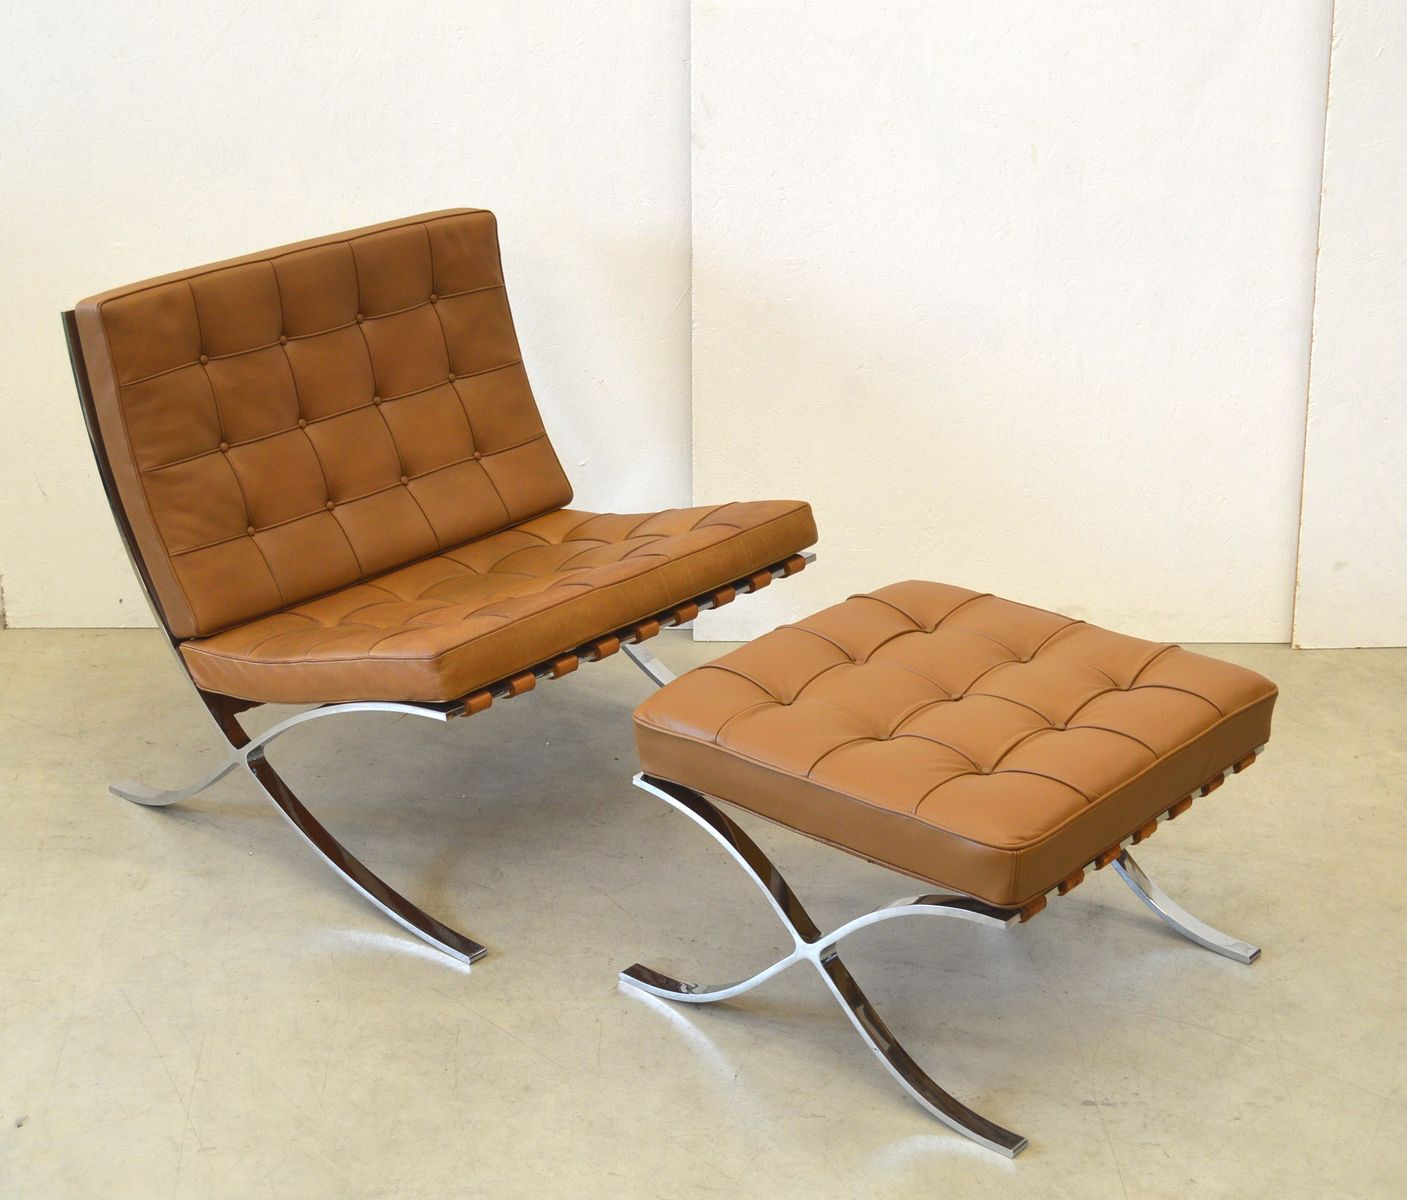 vintage barcelona chair ottoman by mies van der rohe for. Black Bedroom Furniture Sets. Home Design Ideas